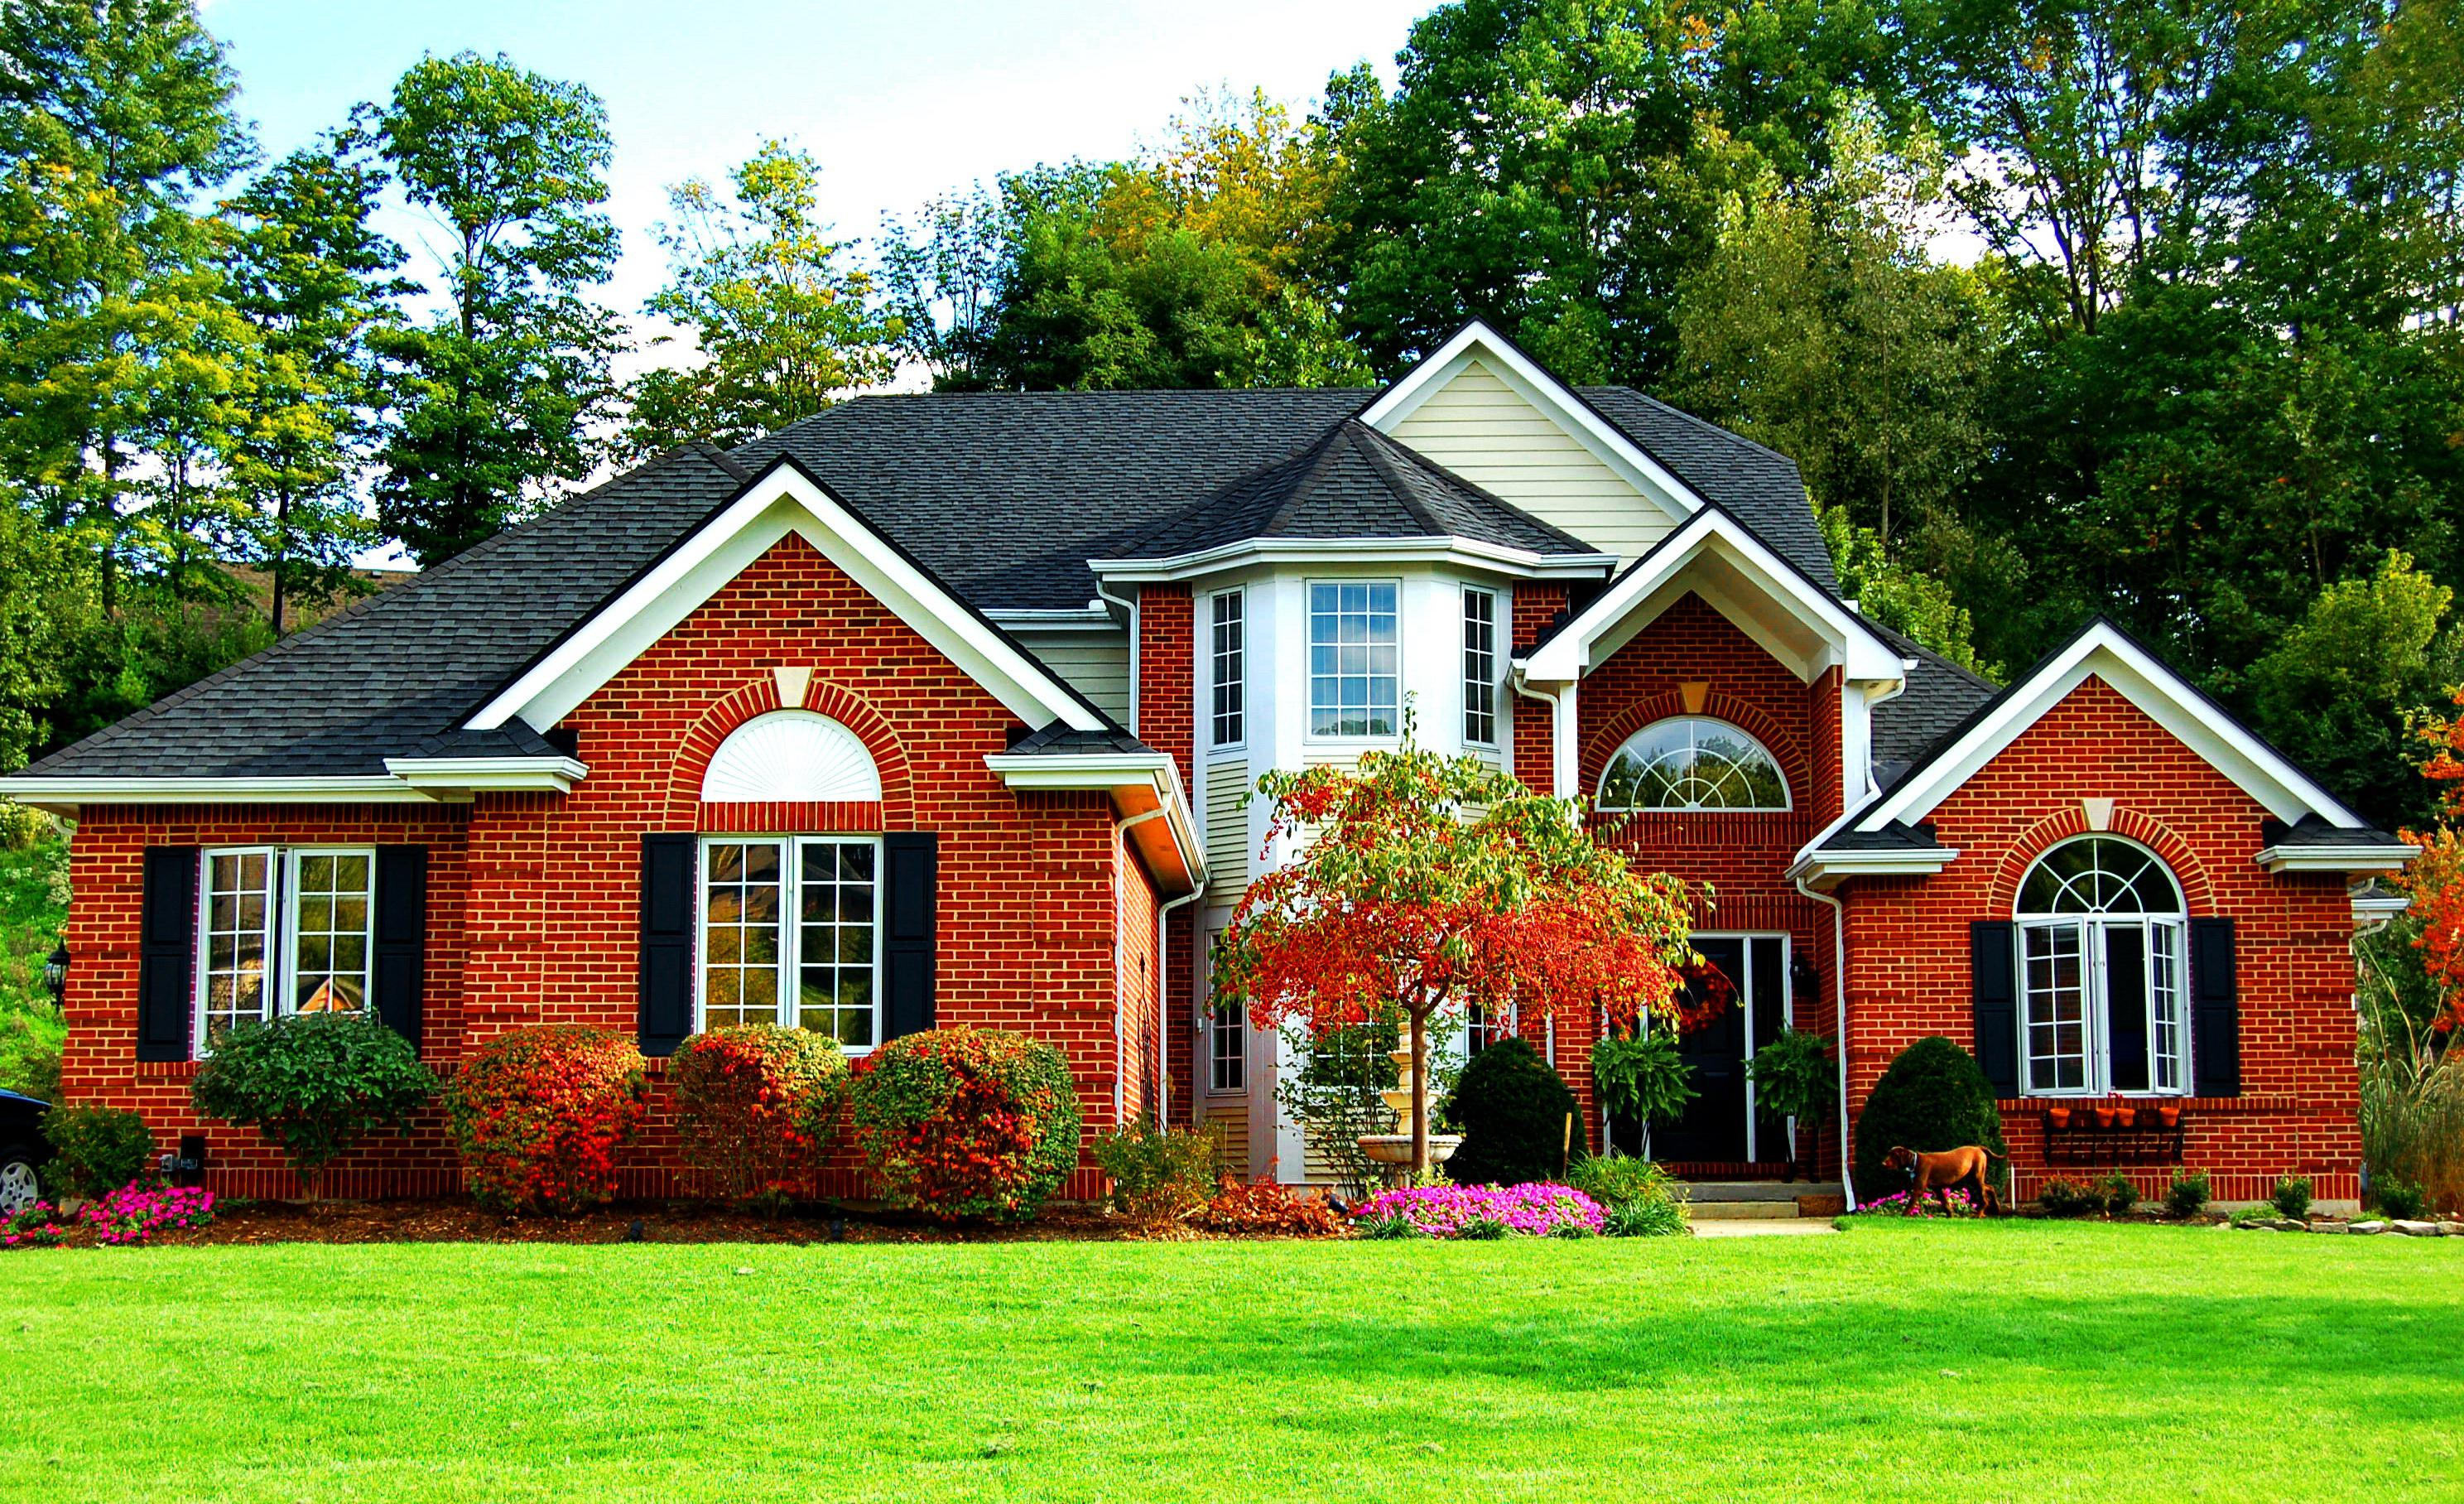 10 Tips to Improve Your Home's Security